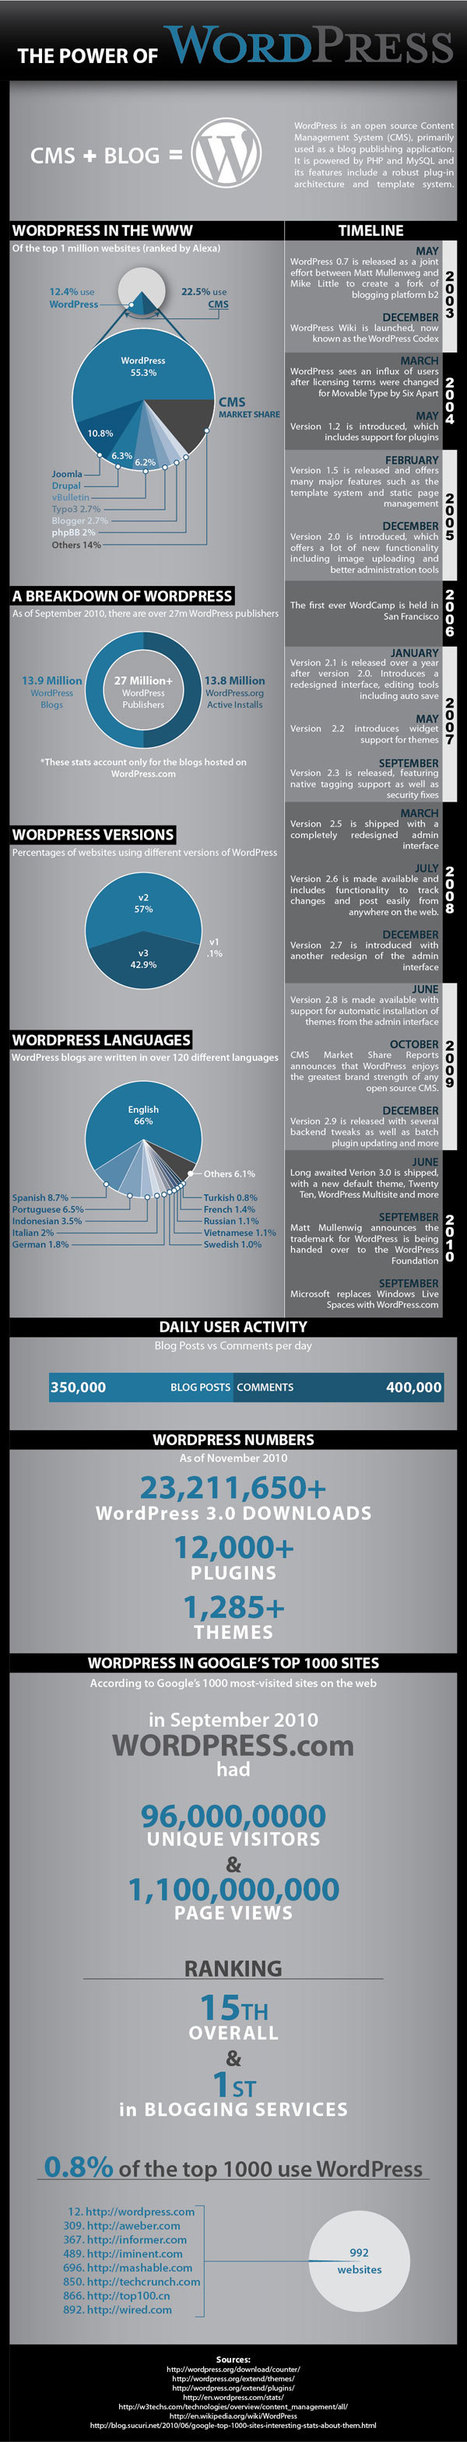 INFOGRAPHIC: The Power of Wordpress | Newsilike | Cloud Central | Scoop.it